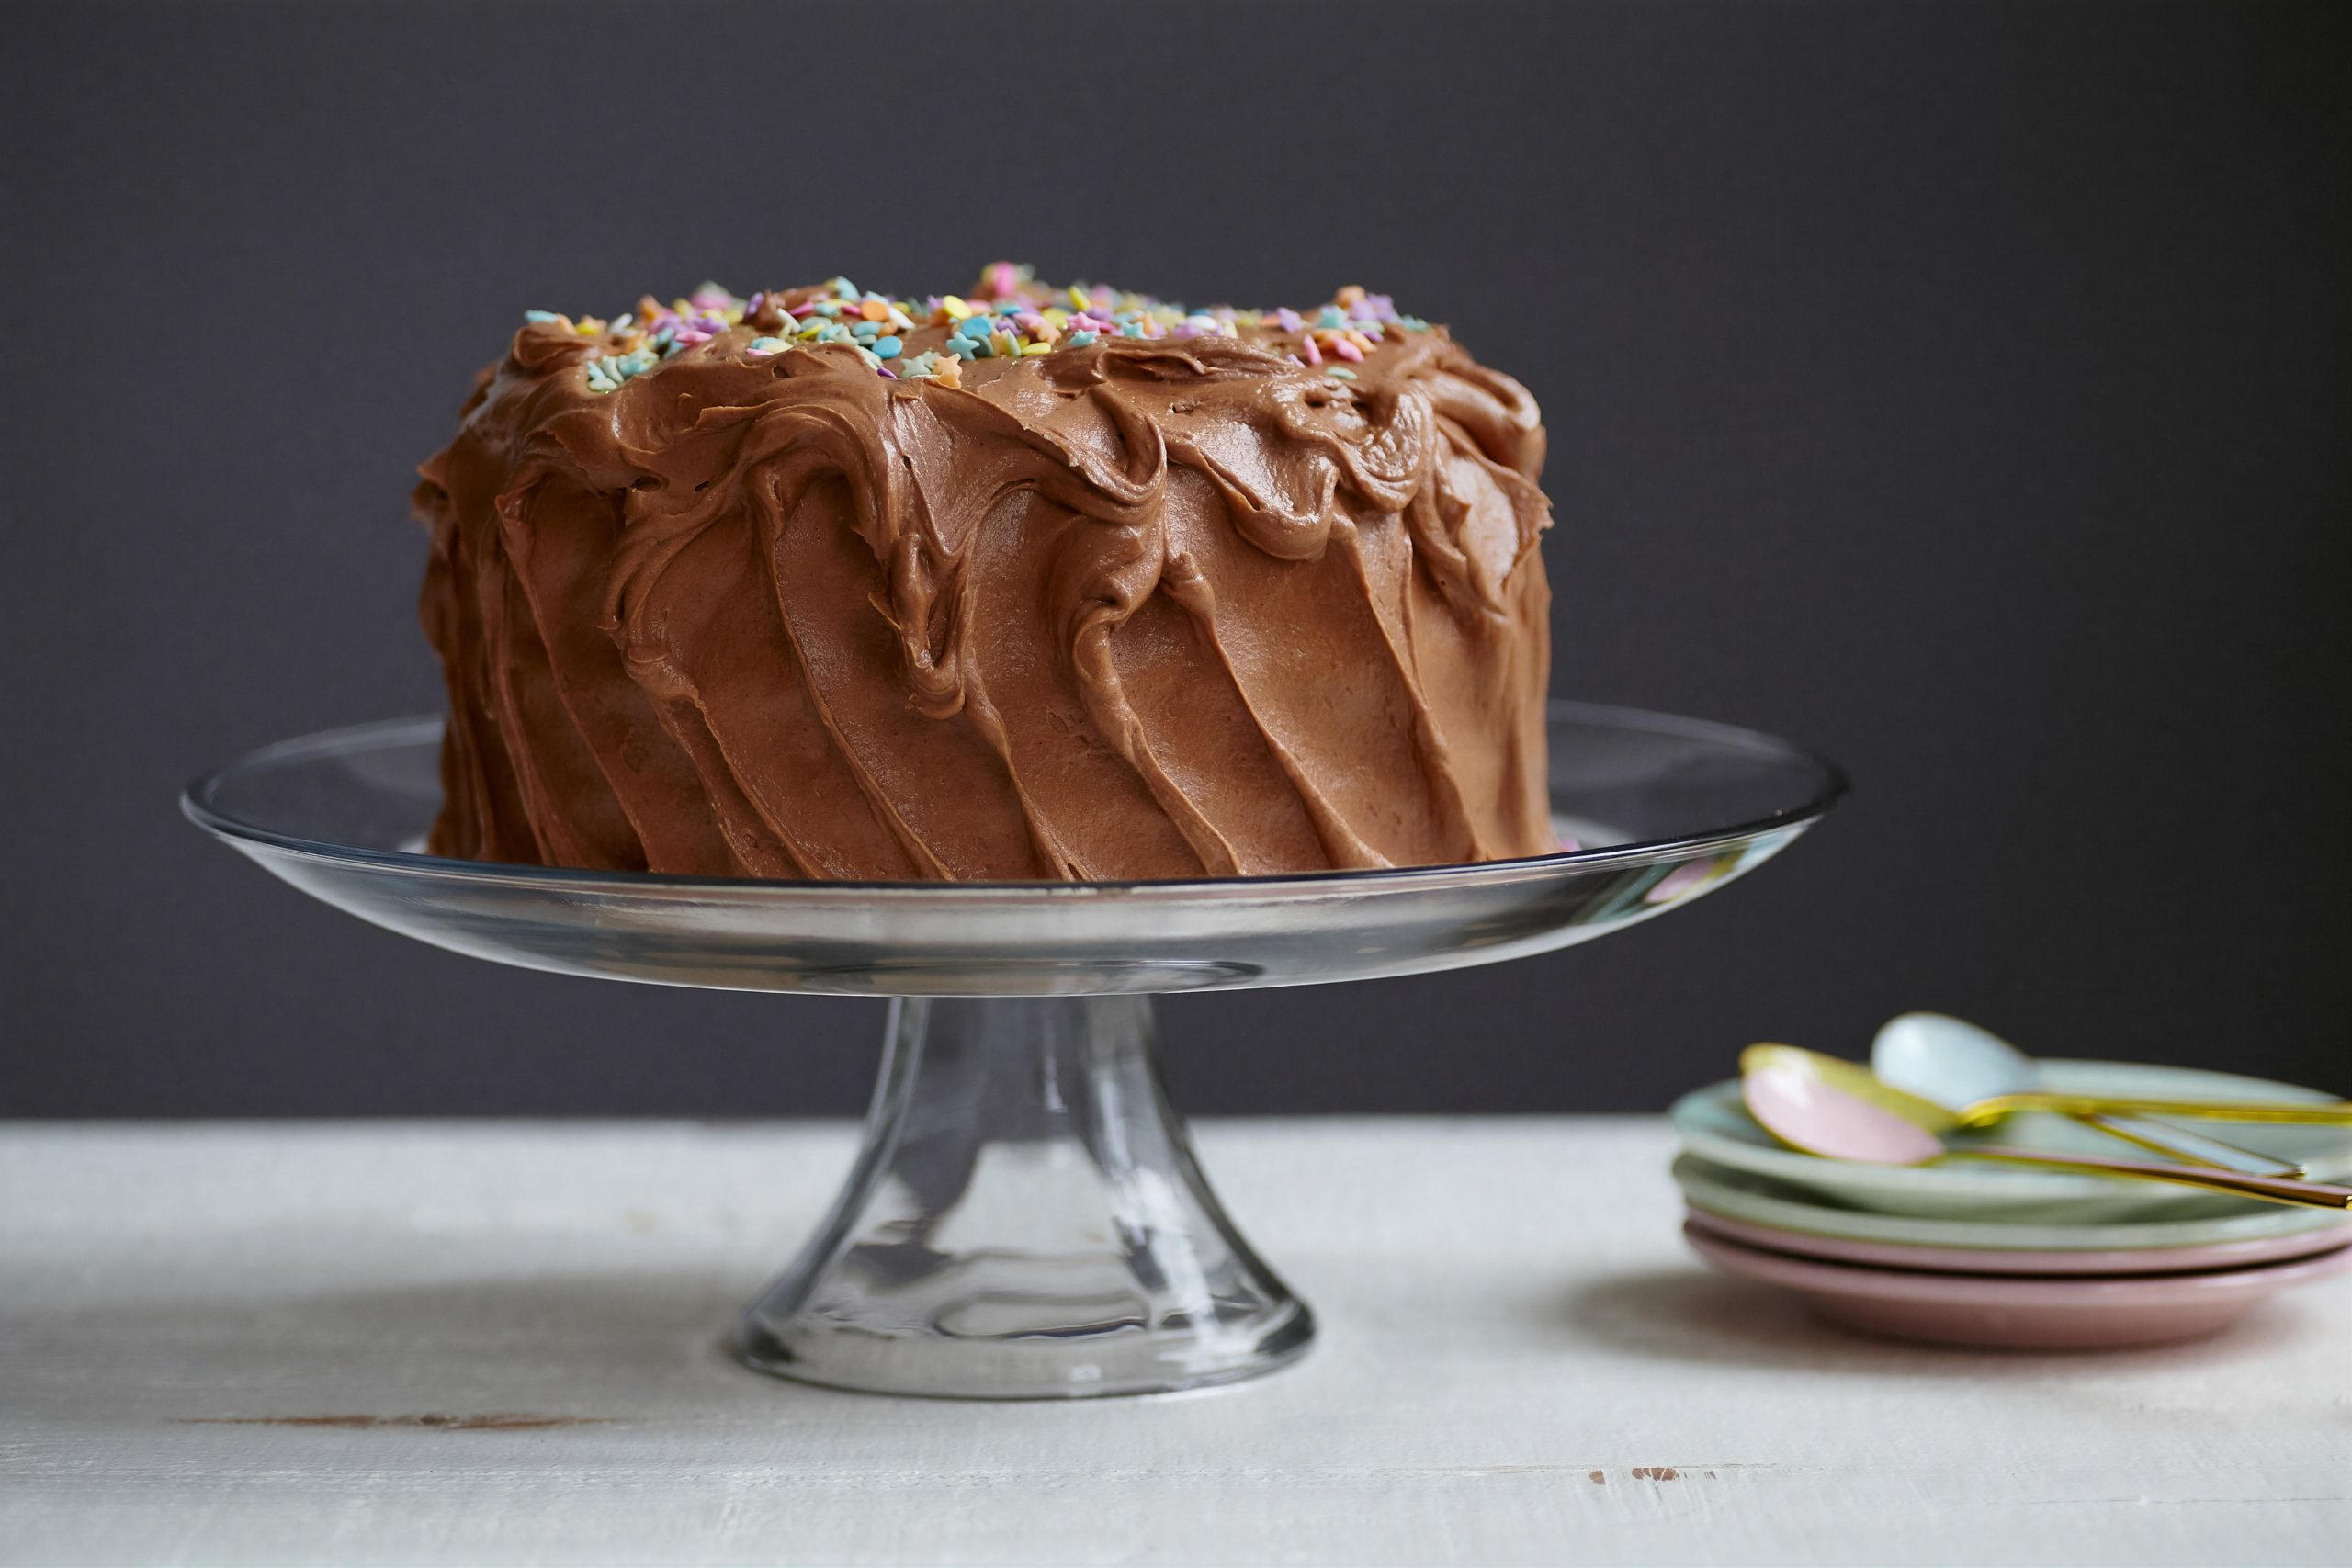 Loaf Of Truth: Delicious Chocolate Cake For Every Occasion